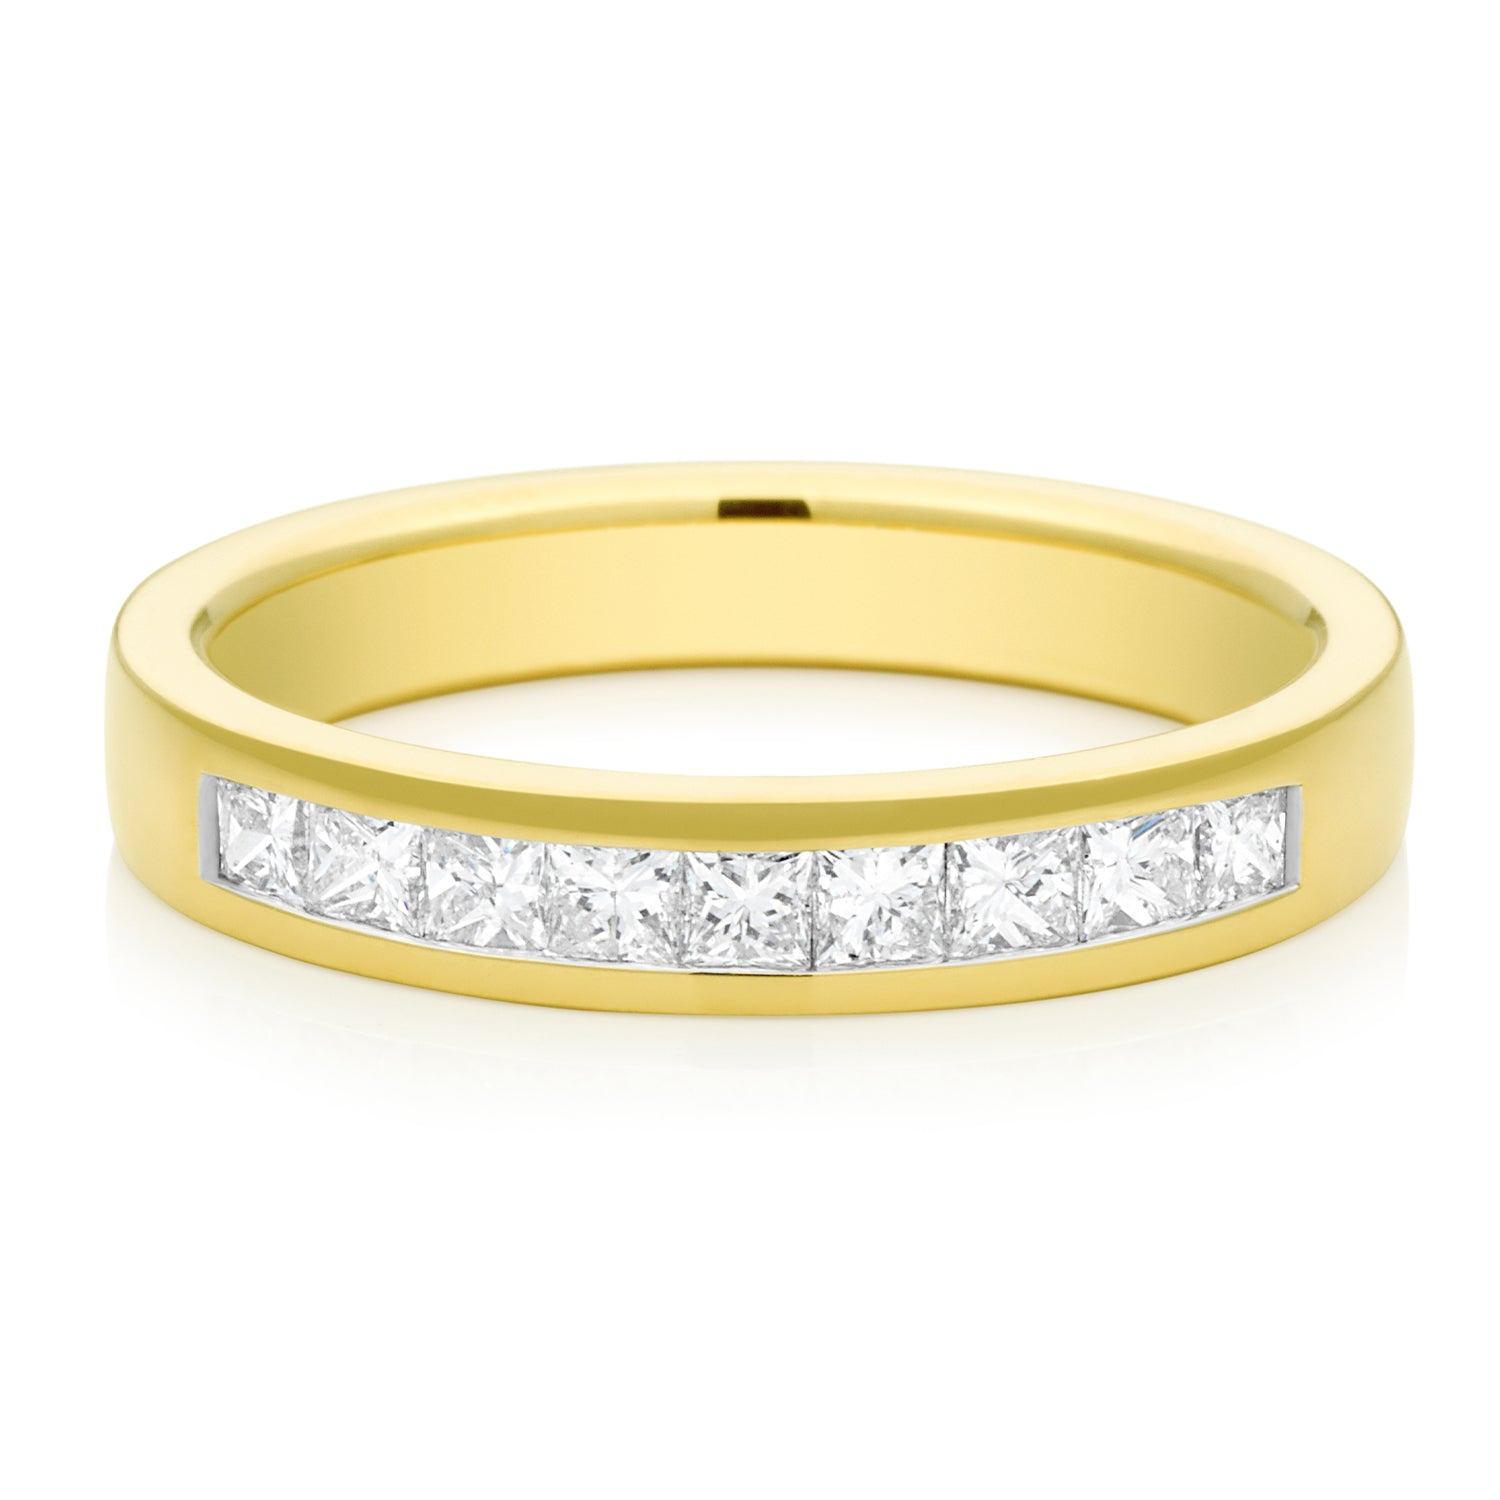 Promise Wedding Band 18ct Yellow Gold Princess Cut with 1/2 CARAT tw of Diamonds